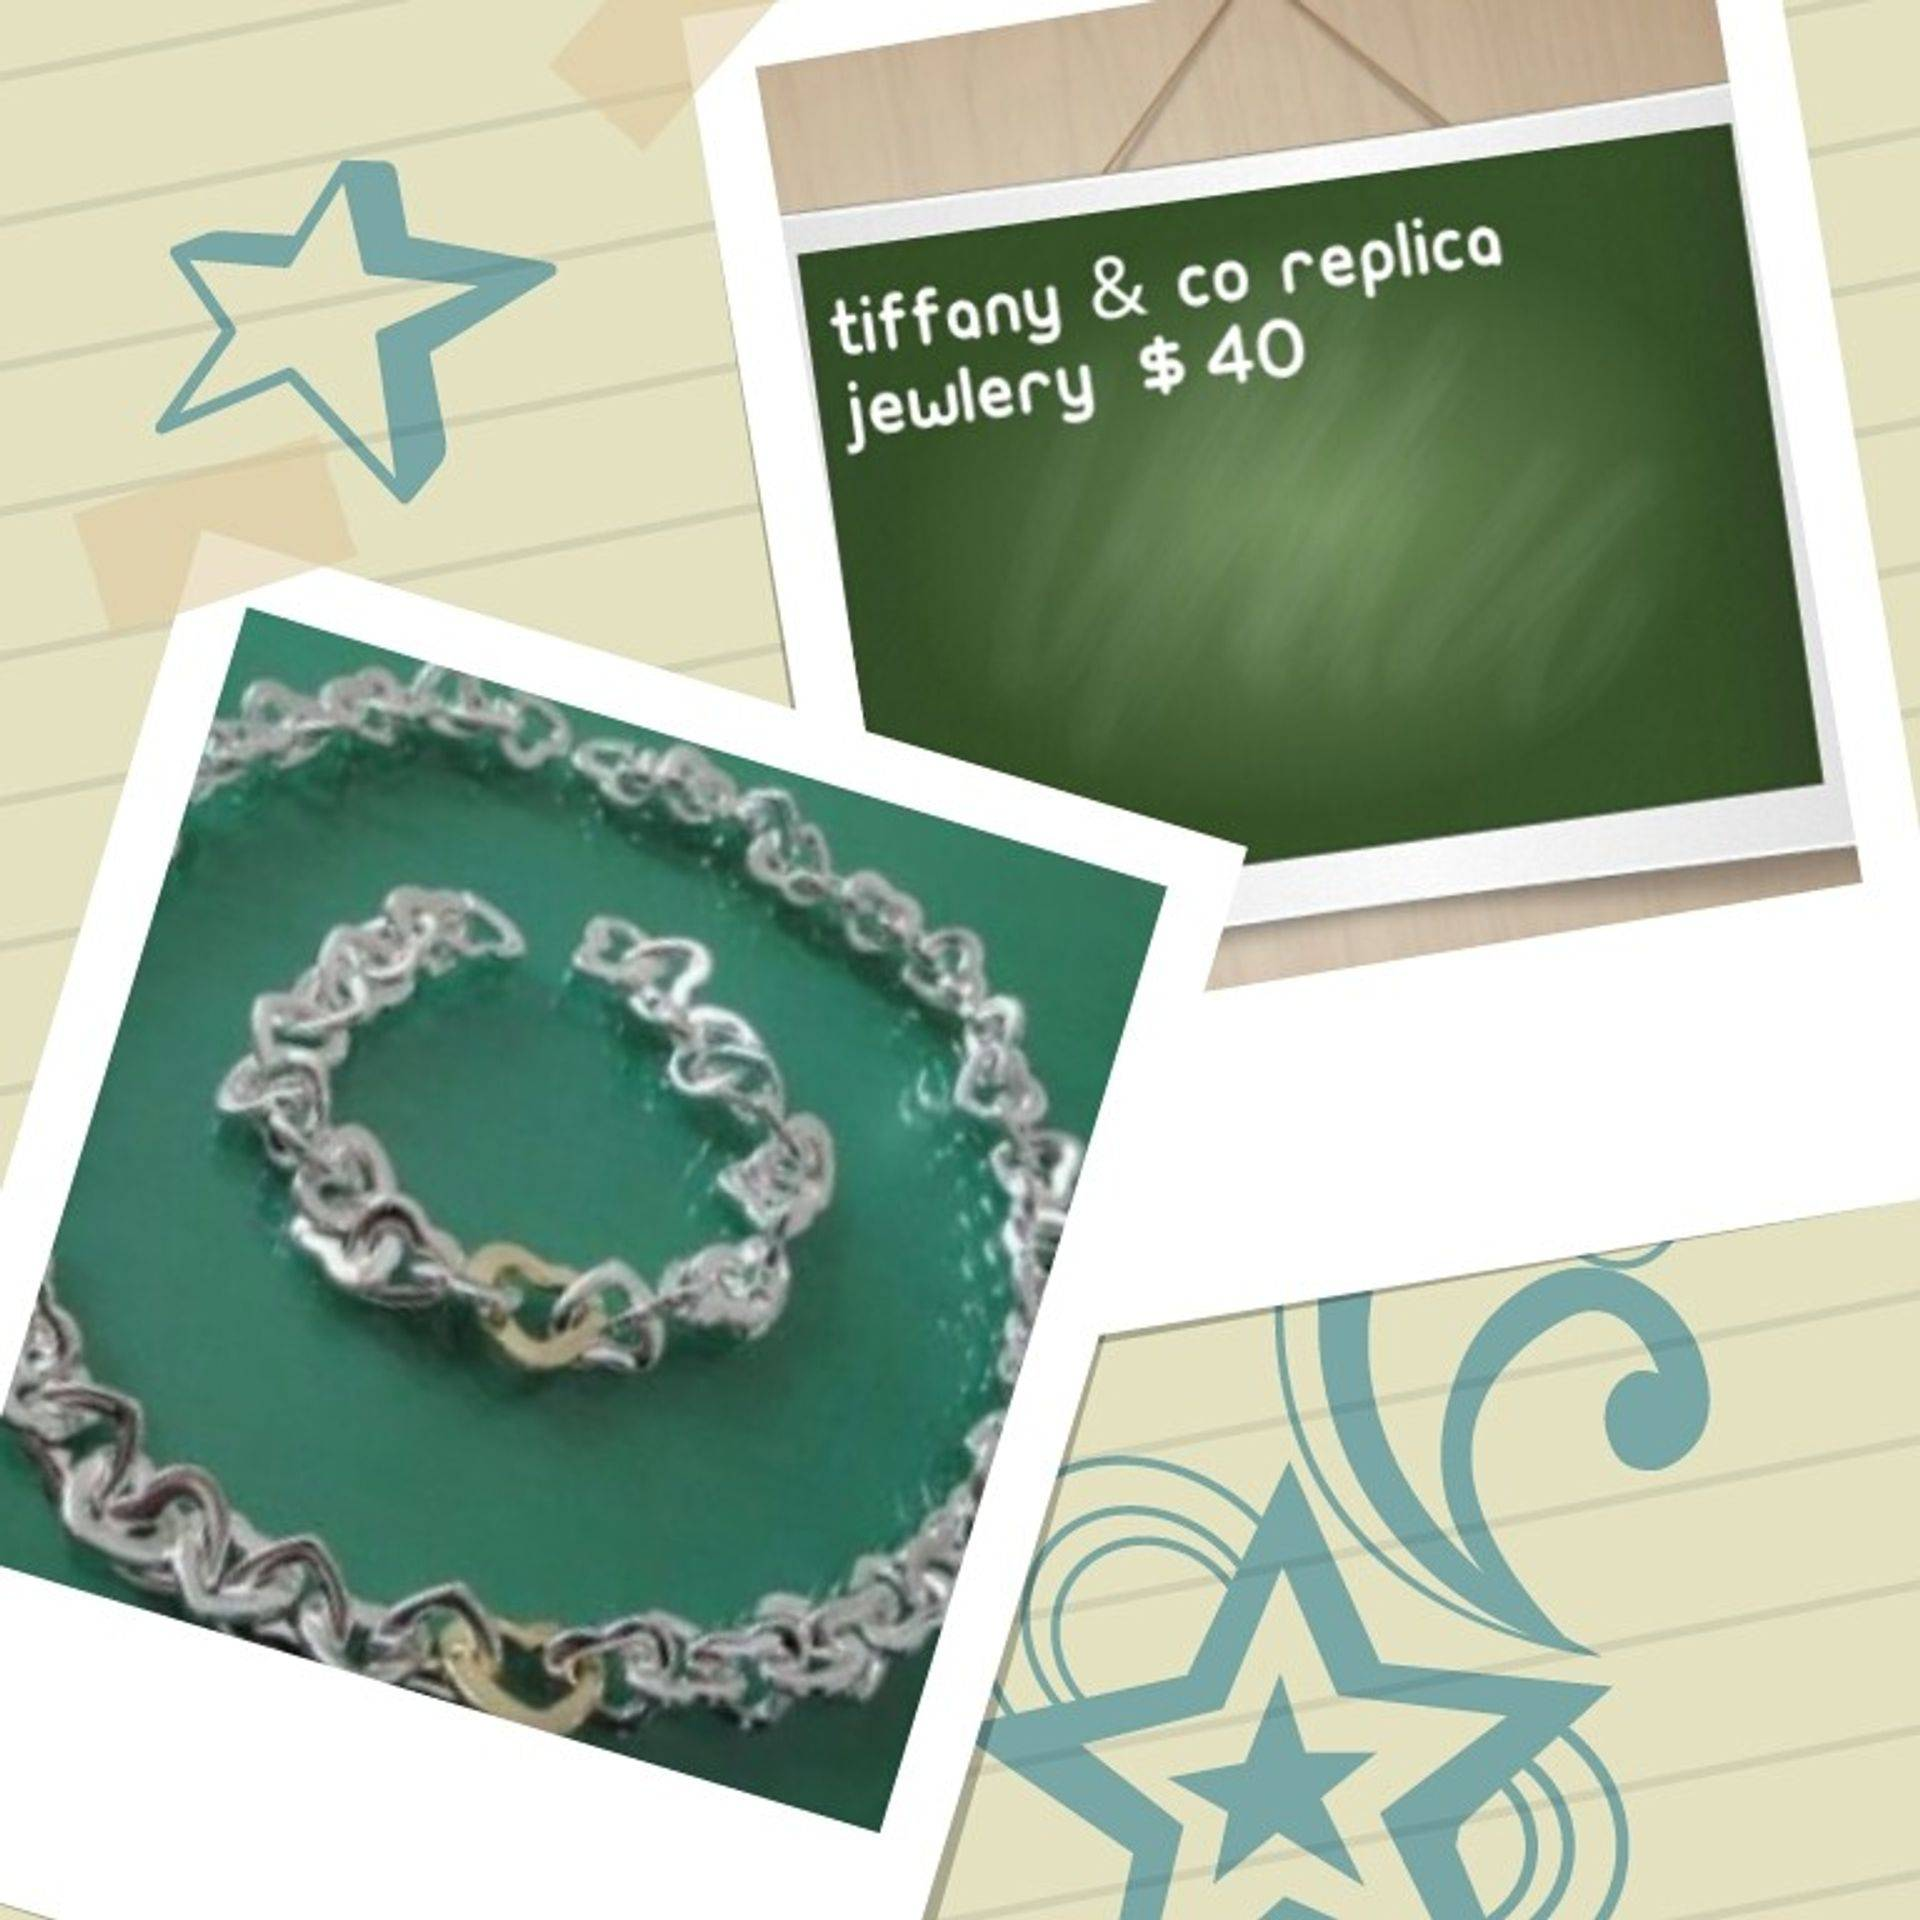 Tiffany & Co necklace and bracelet set